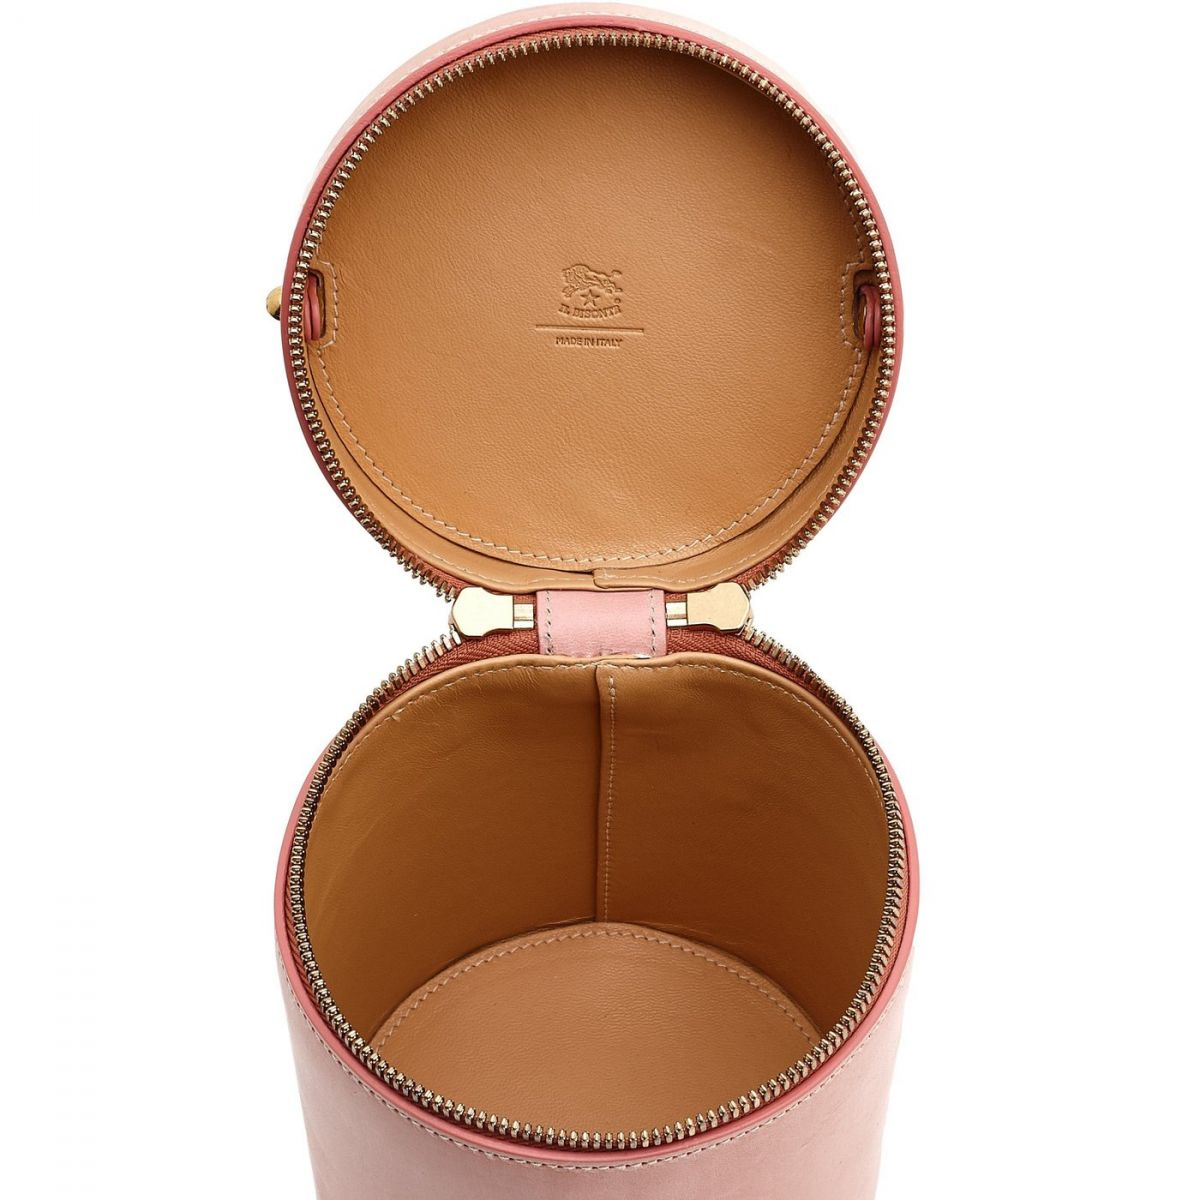 Women's Crossbody Bag  in Leather BCR148 color Pink   Details